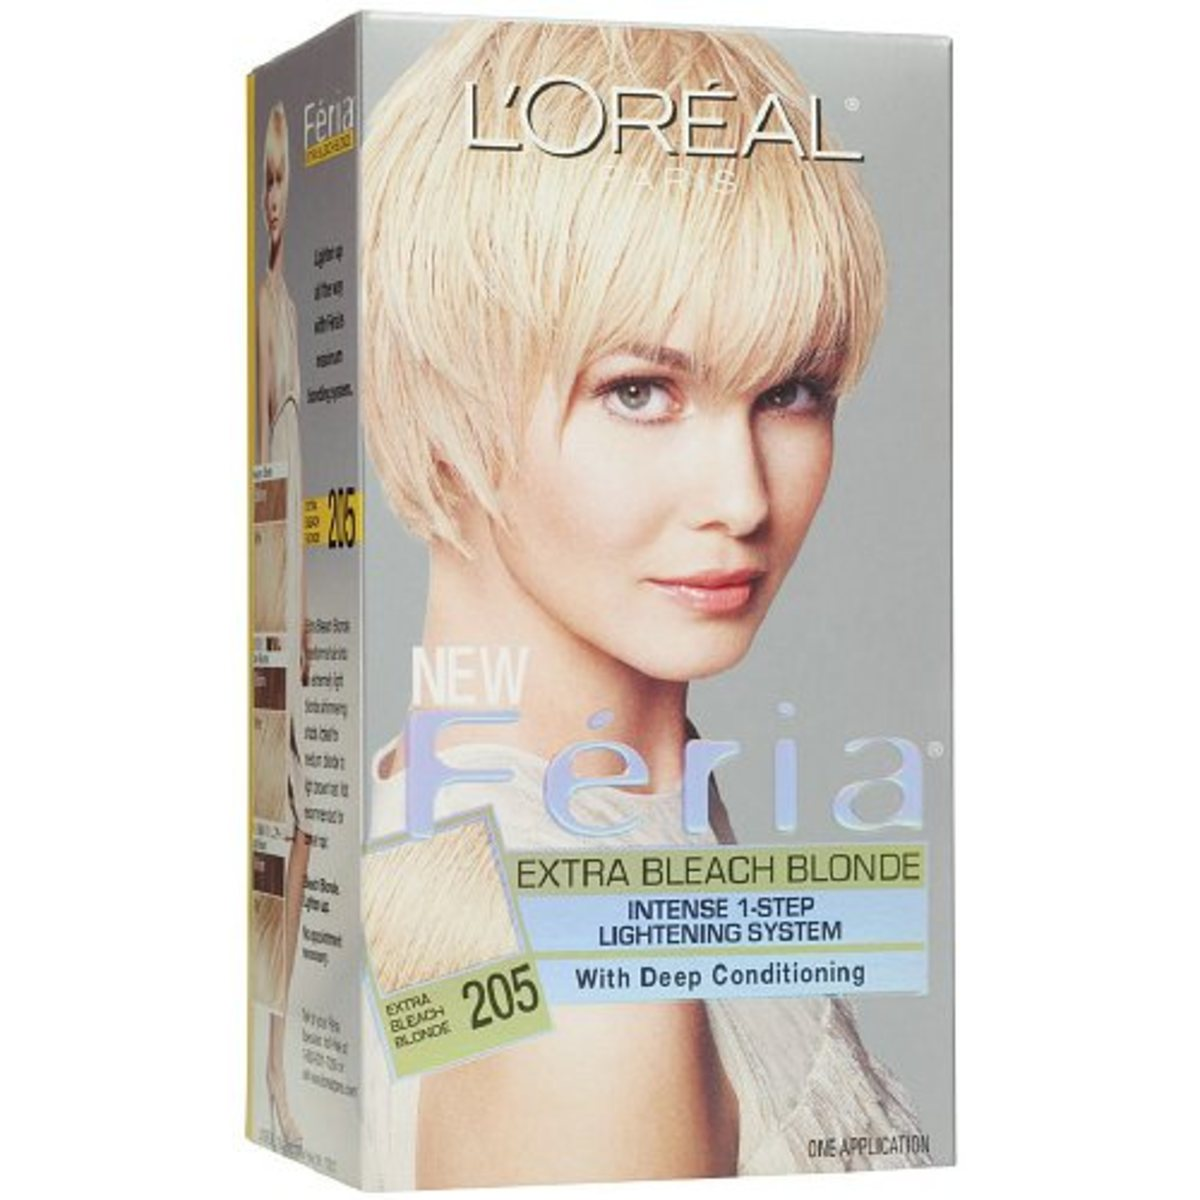 Very light blonde hair dye